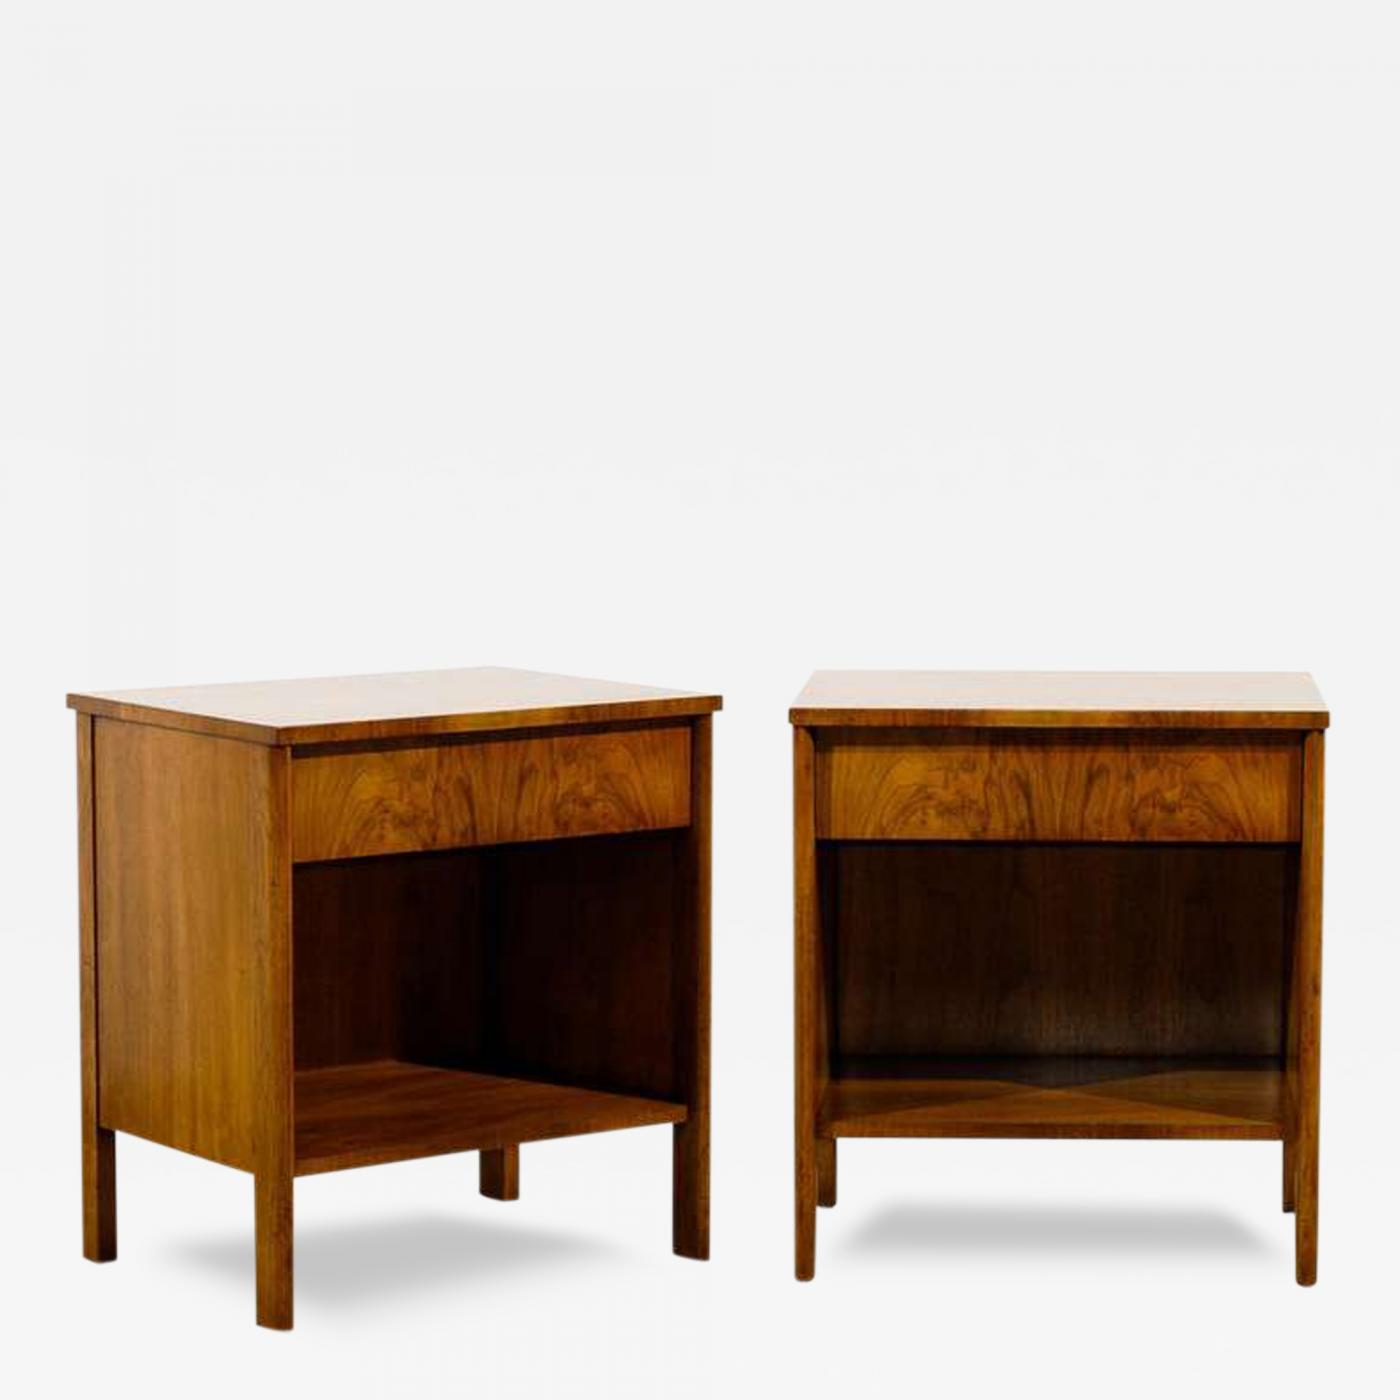 Listings / Furniture / Case Pieces / Night Stands